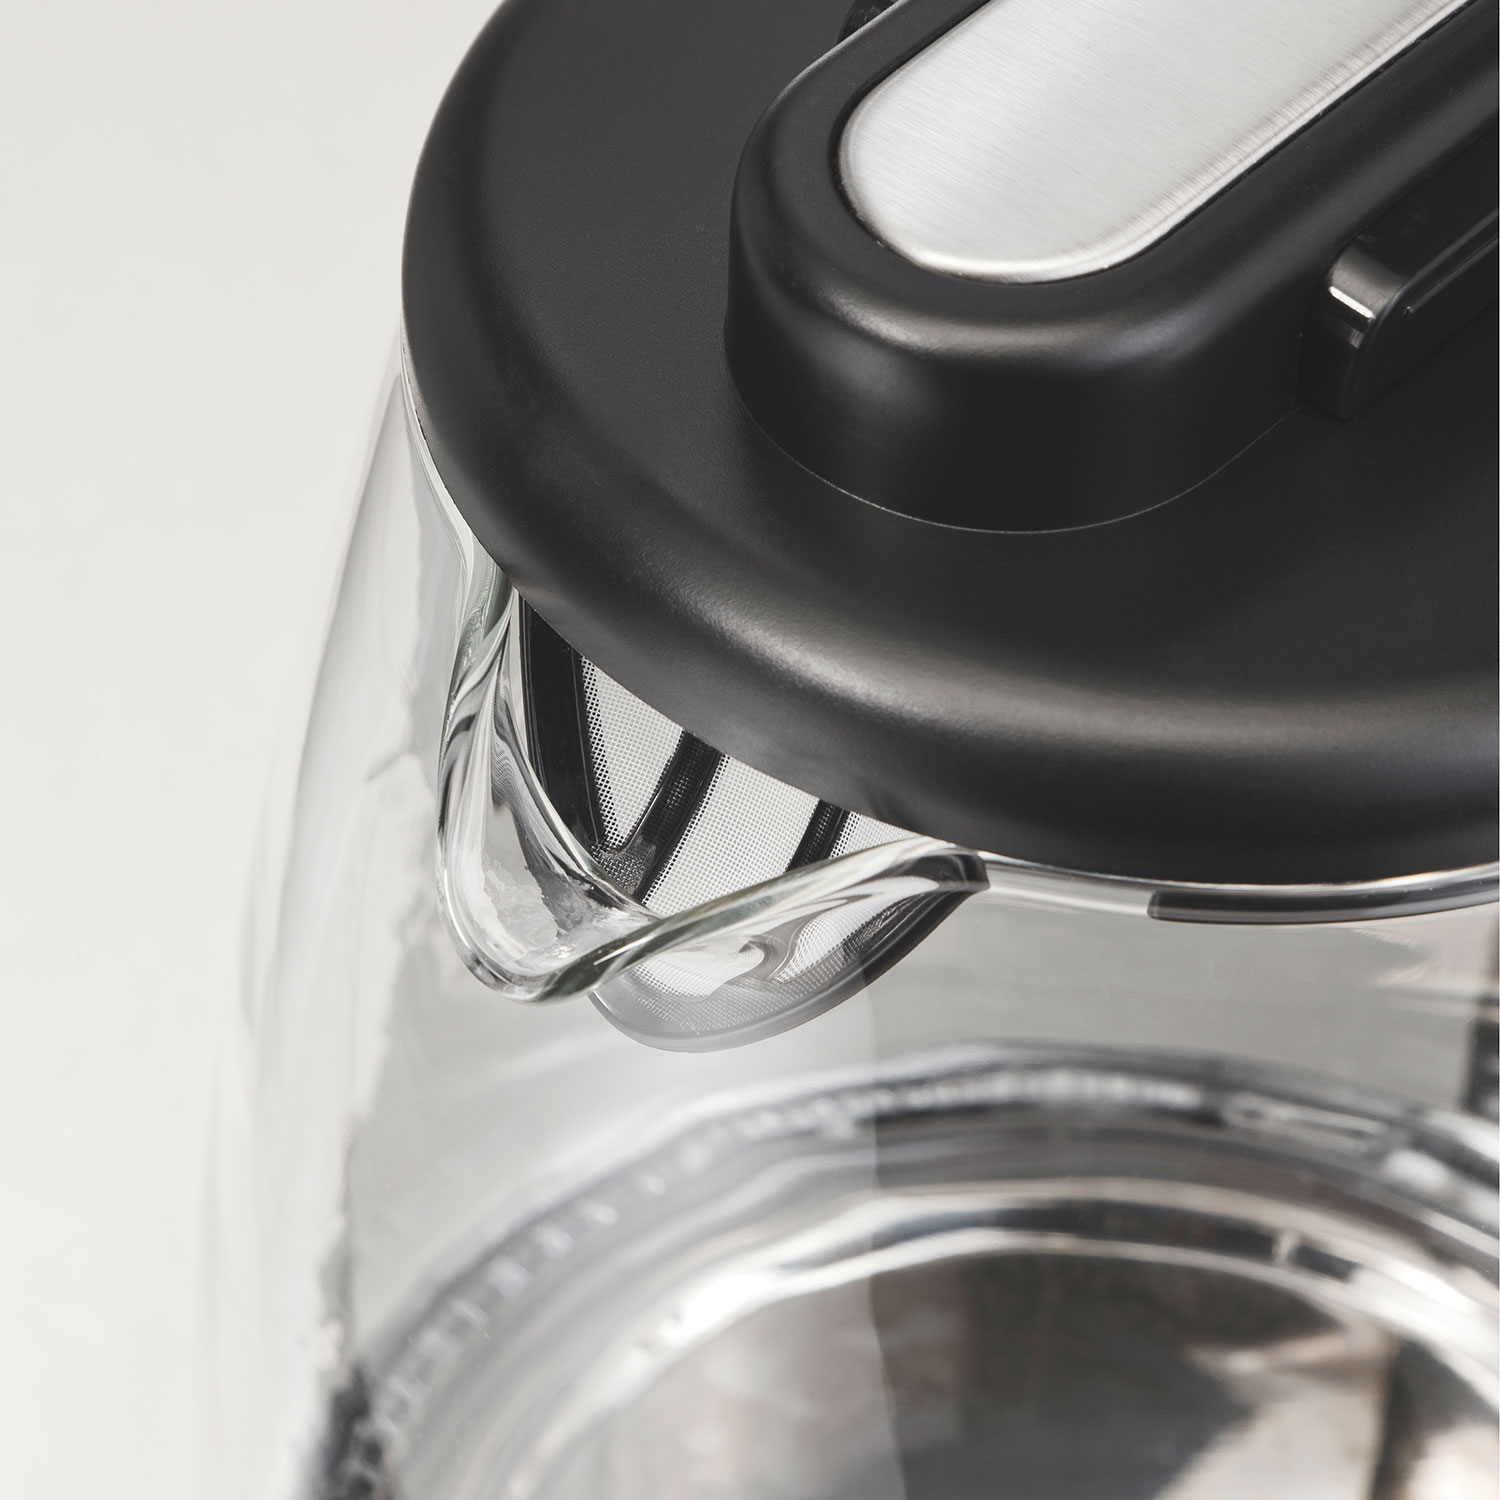 Compact 1 Liter Glass Kettle (40930)